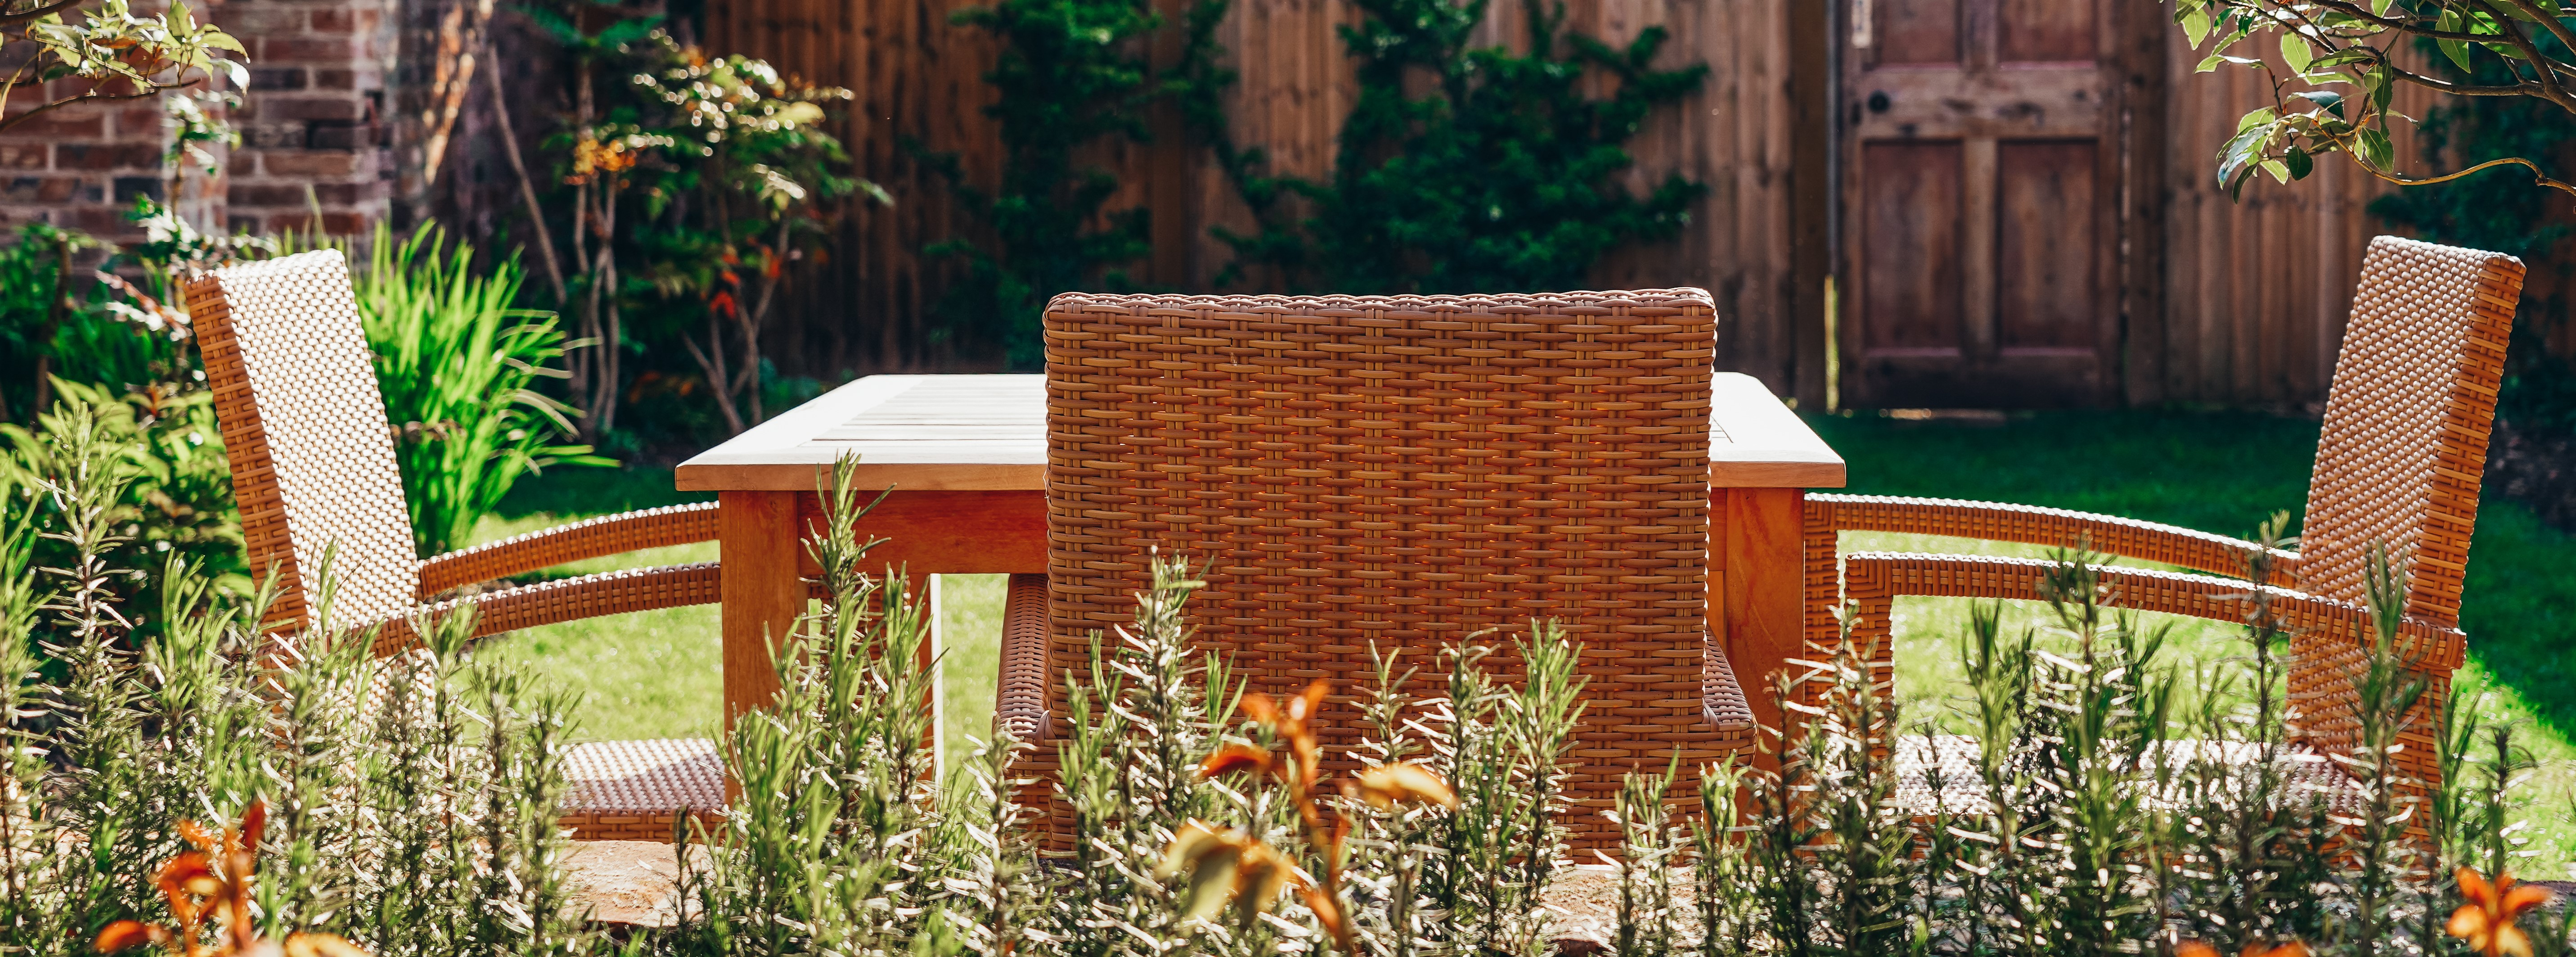 sunny chairs & table in 3